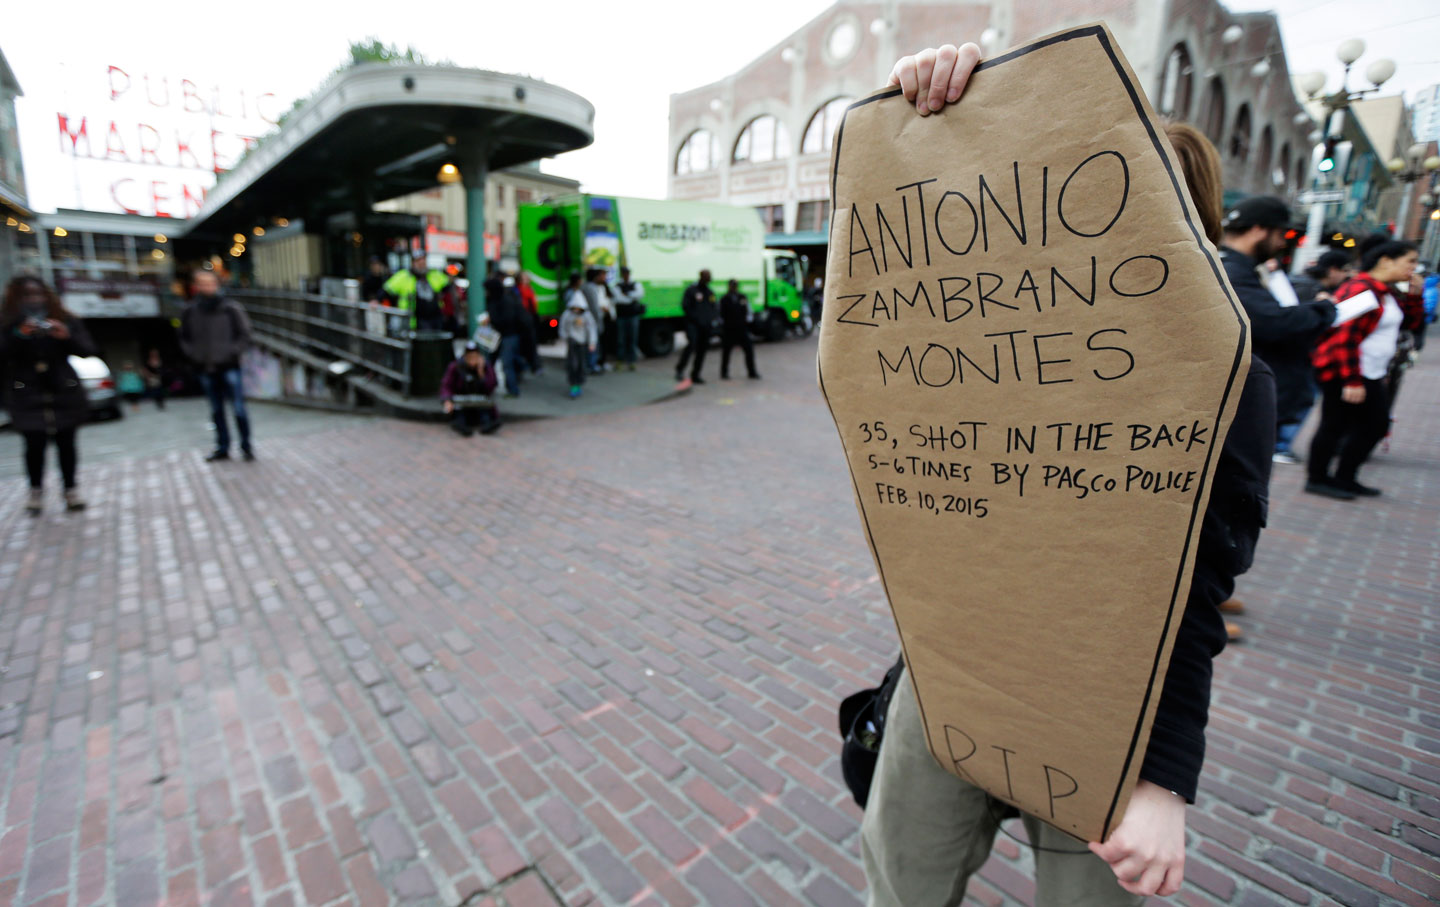 A protest against the death of Antonio Zambrano-Montes